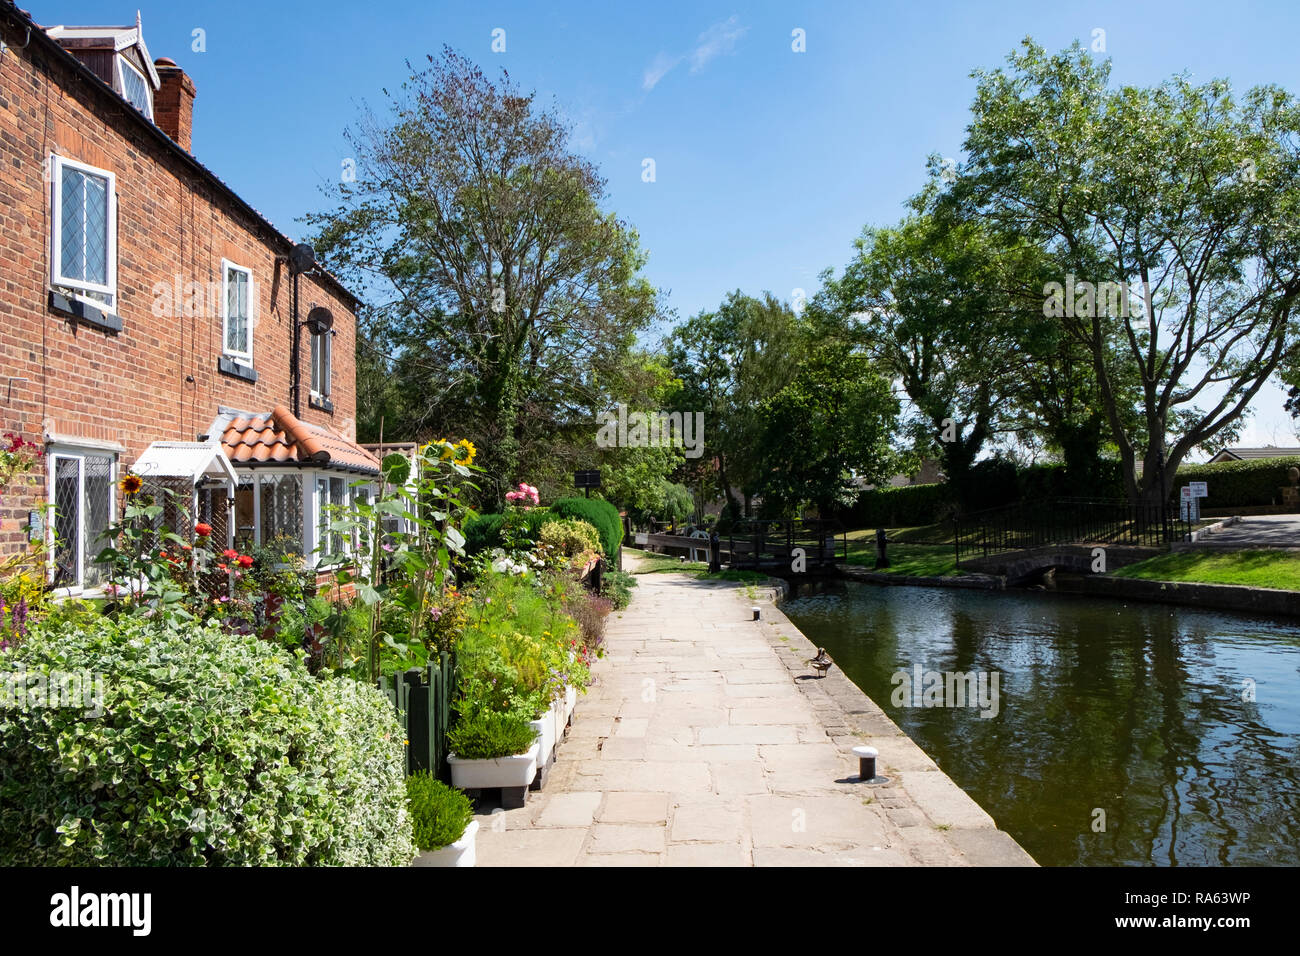 Towpath alongside cottages at Turnerwood, Chesterfield Canal, Worksop, UK - Stock Image